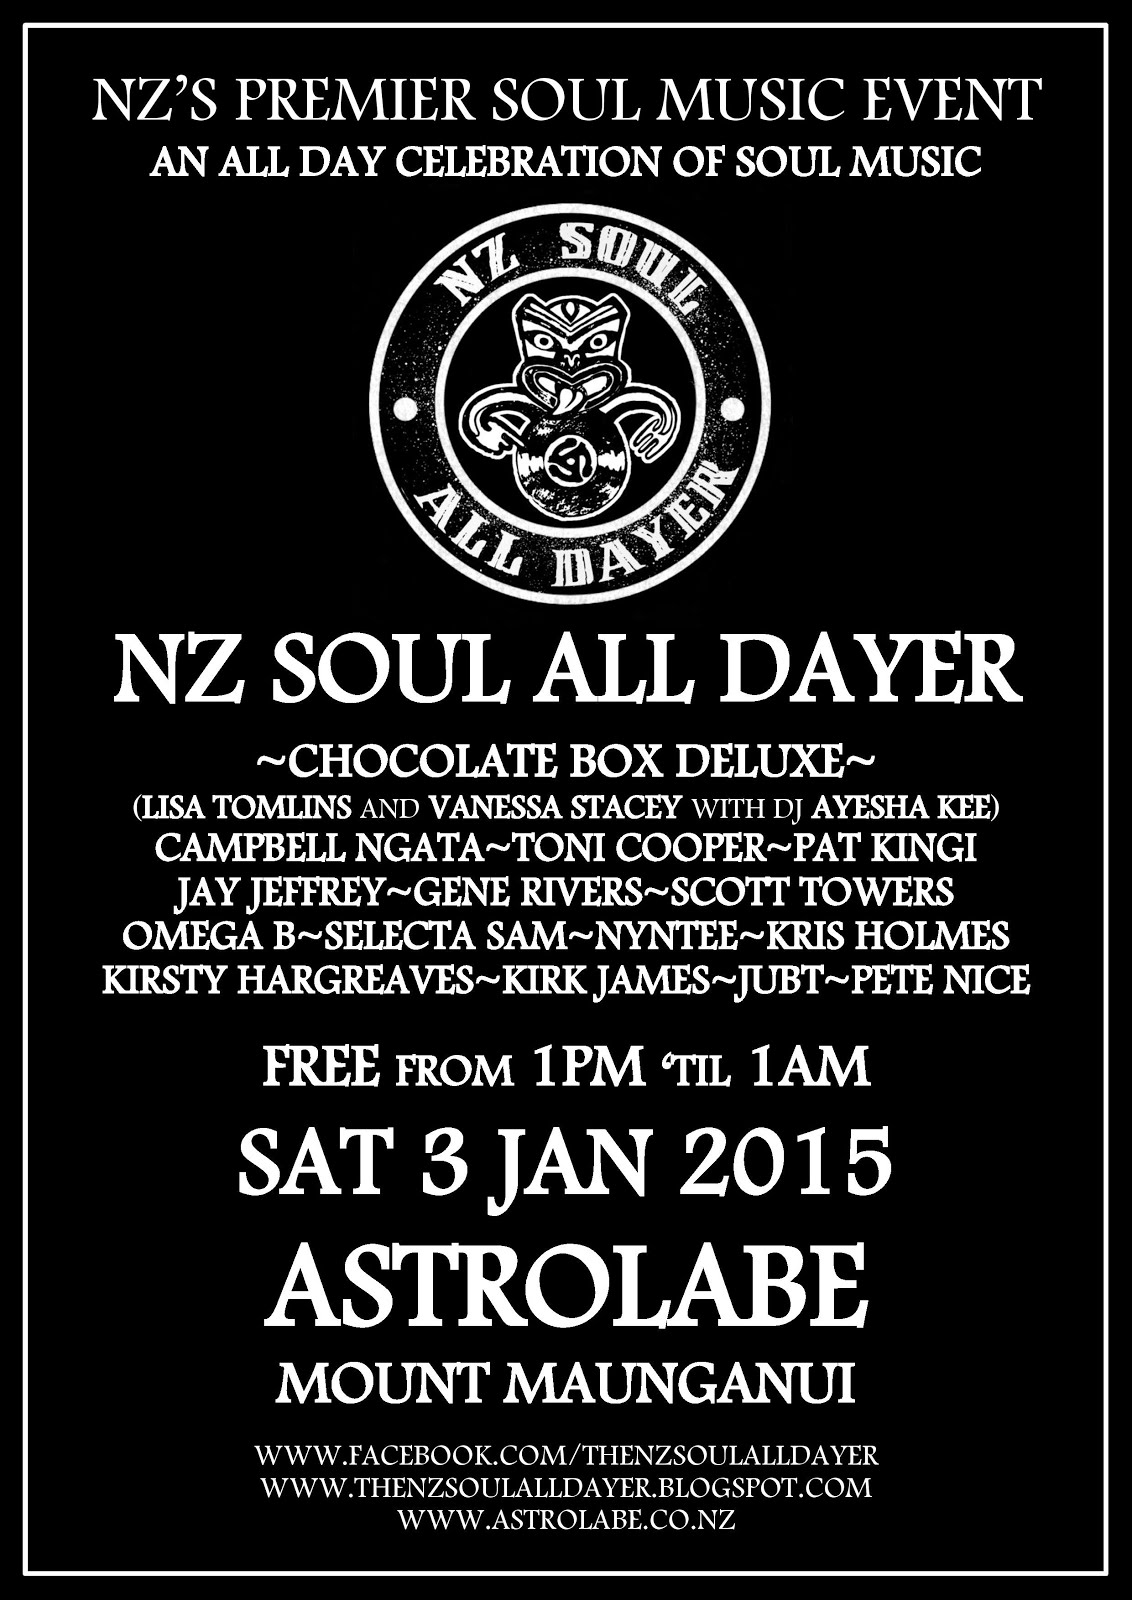 NZ Soul All Dayer Mt Maunganui 2015